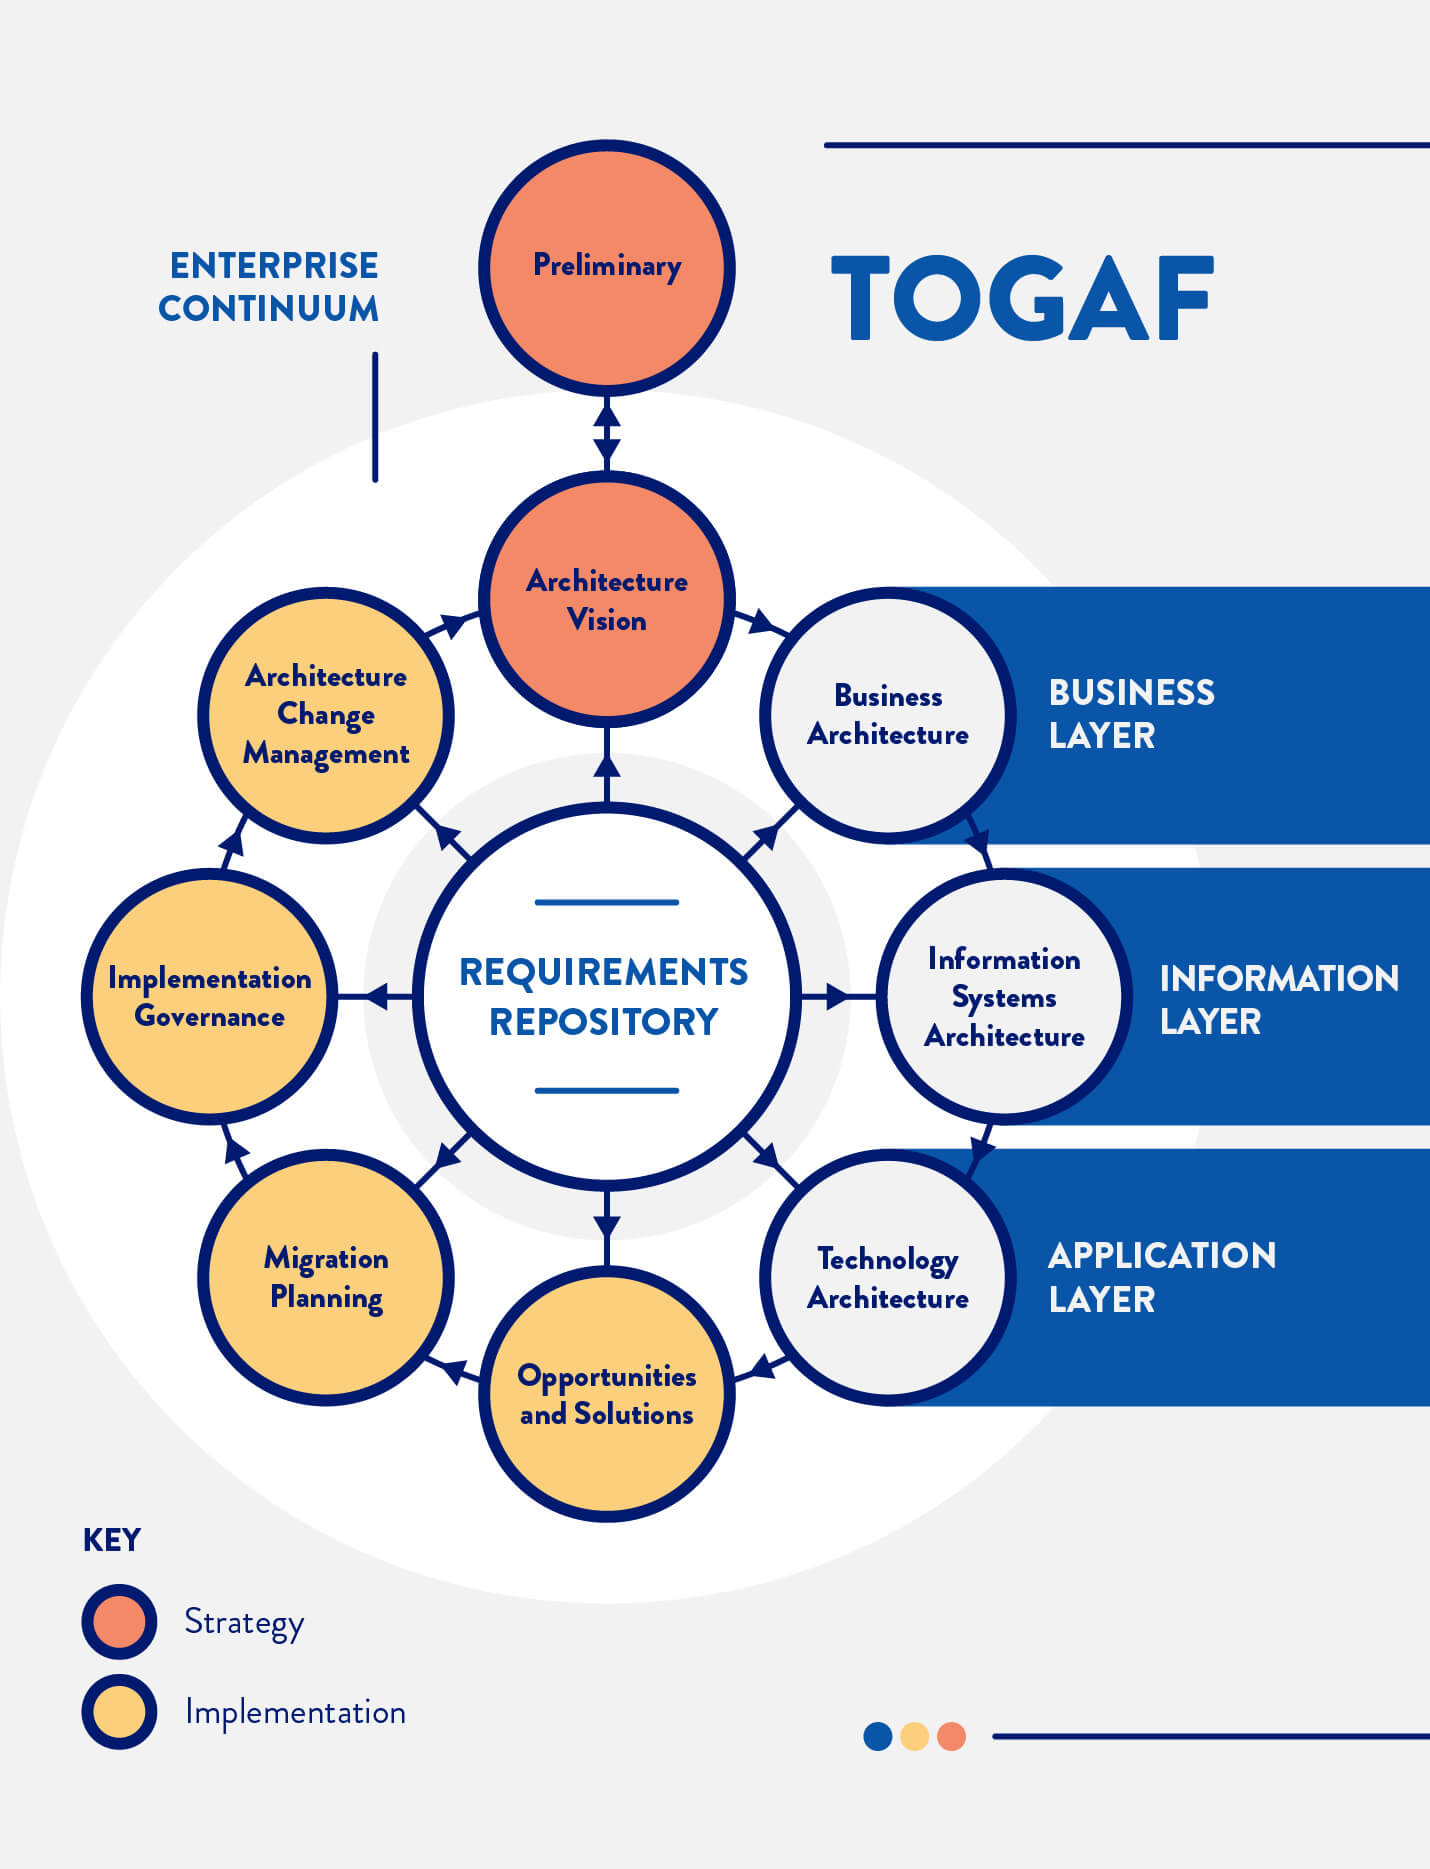 Togaf enterprise continuum for enterprise architects to plan and iterate